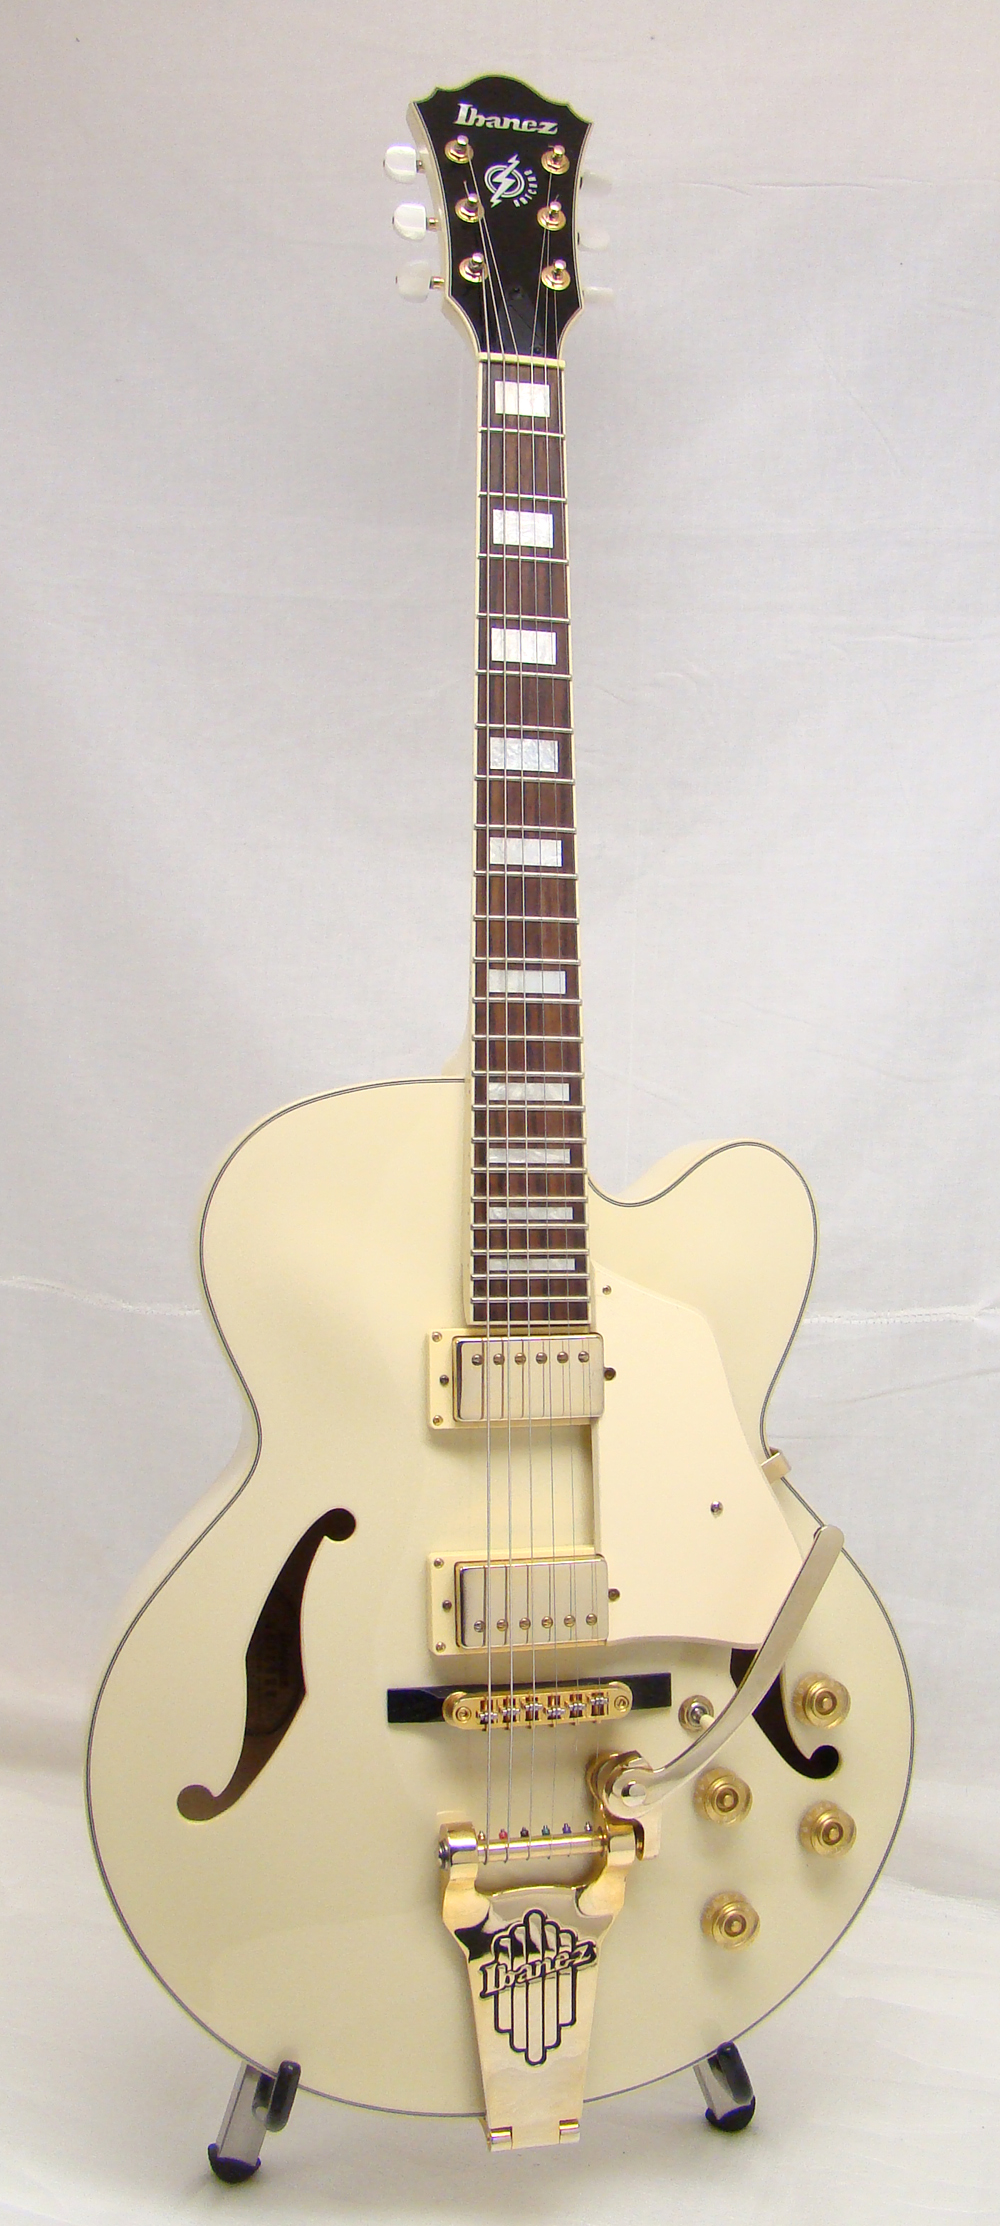 used ibanez artcore hollow body electric guitar exc ivory gold hw ebay. Black Bedroom Furniture Sets. Home Design Ideas